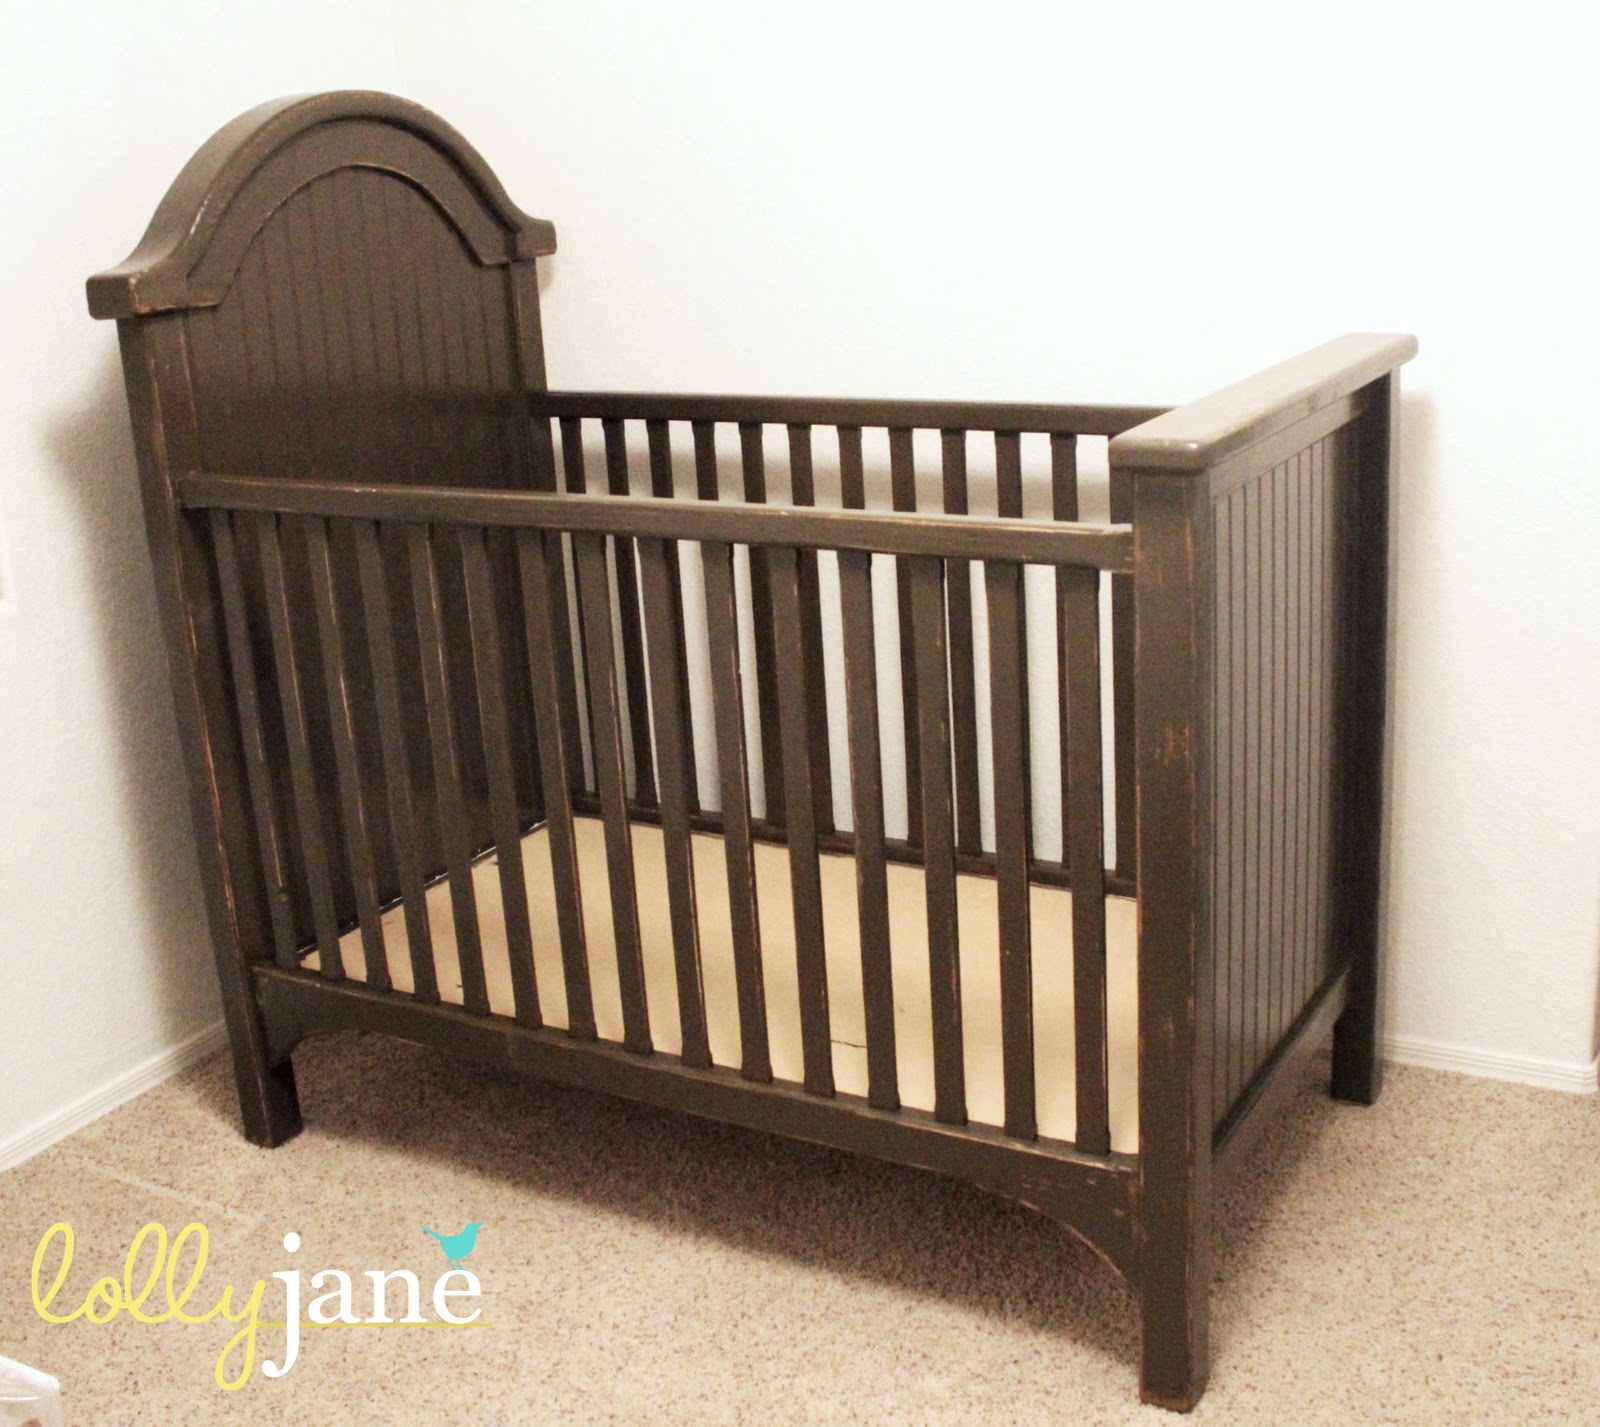 Distressed Crib Using Candle Wax Lolly Jane